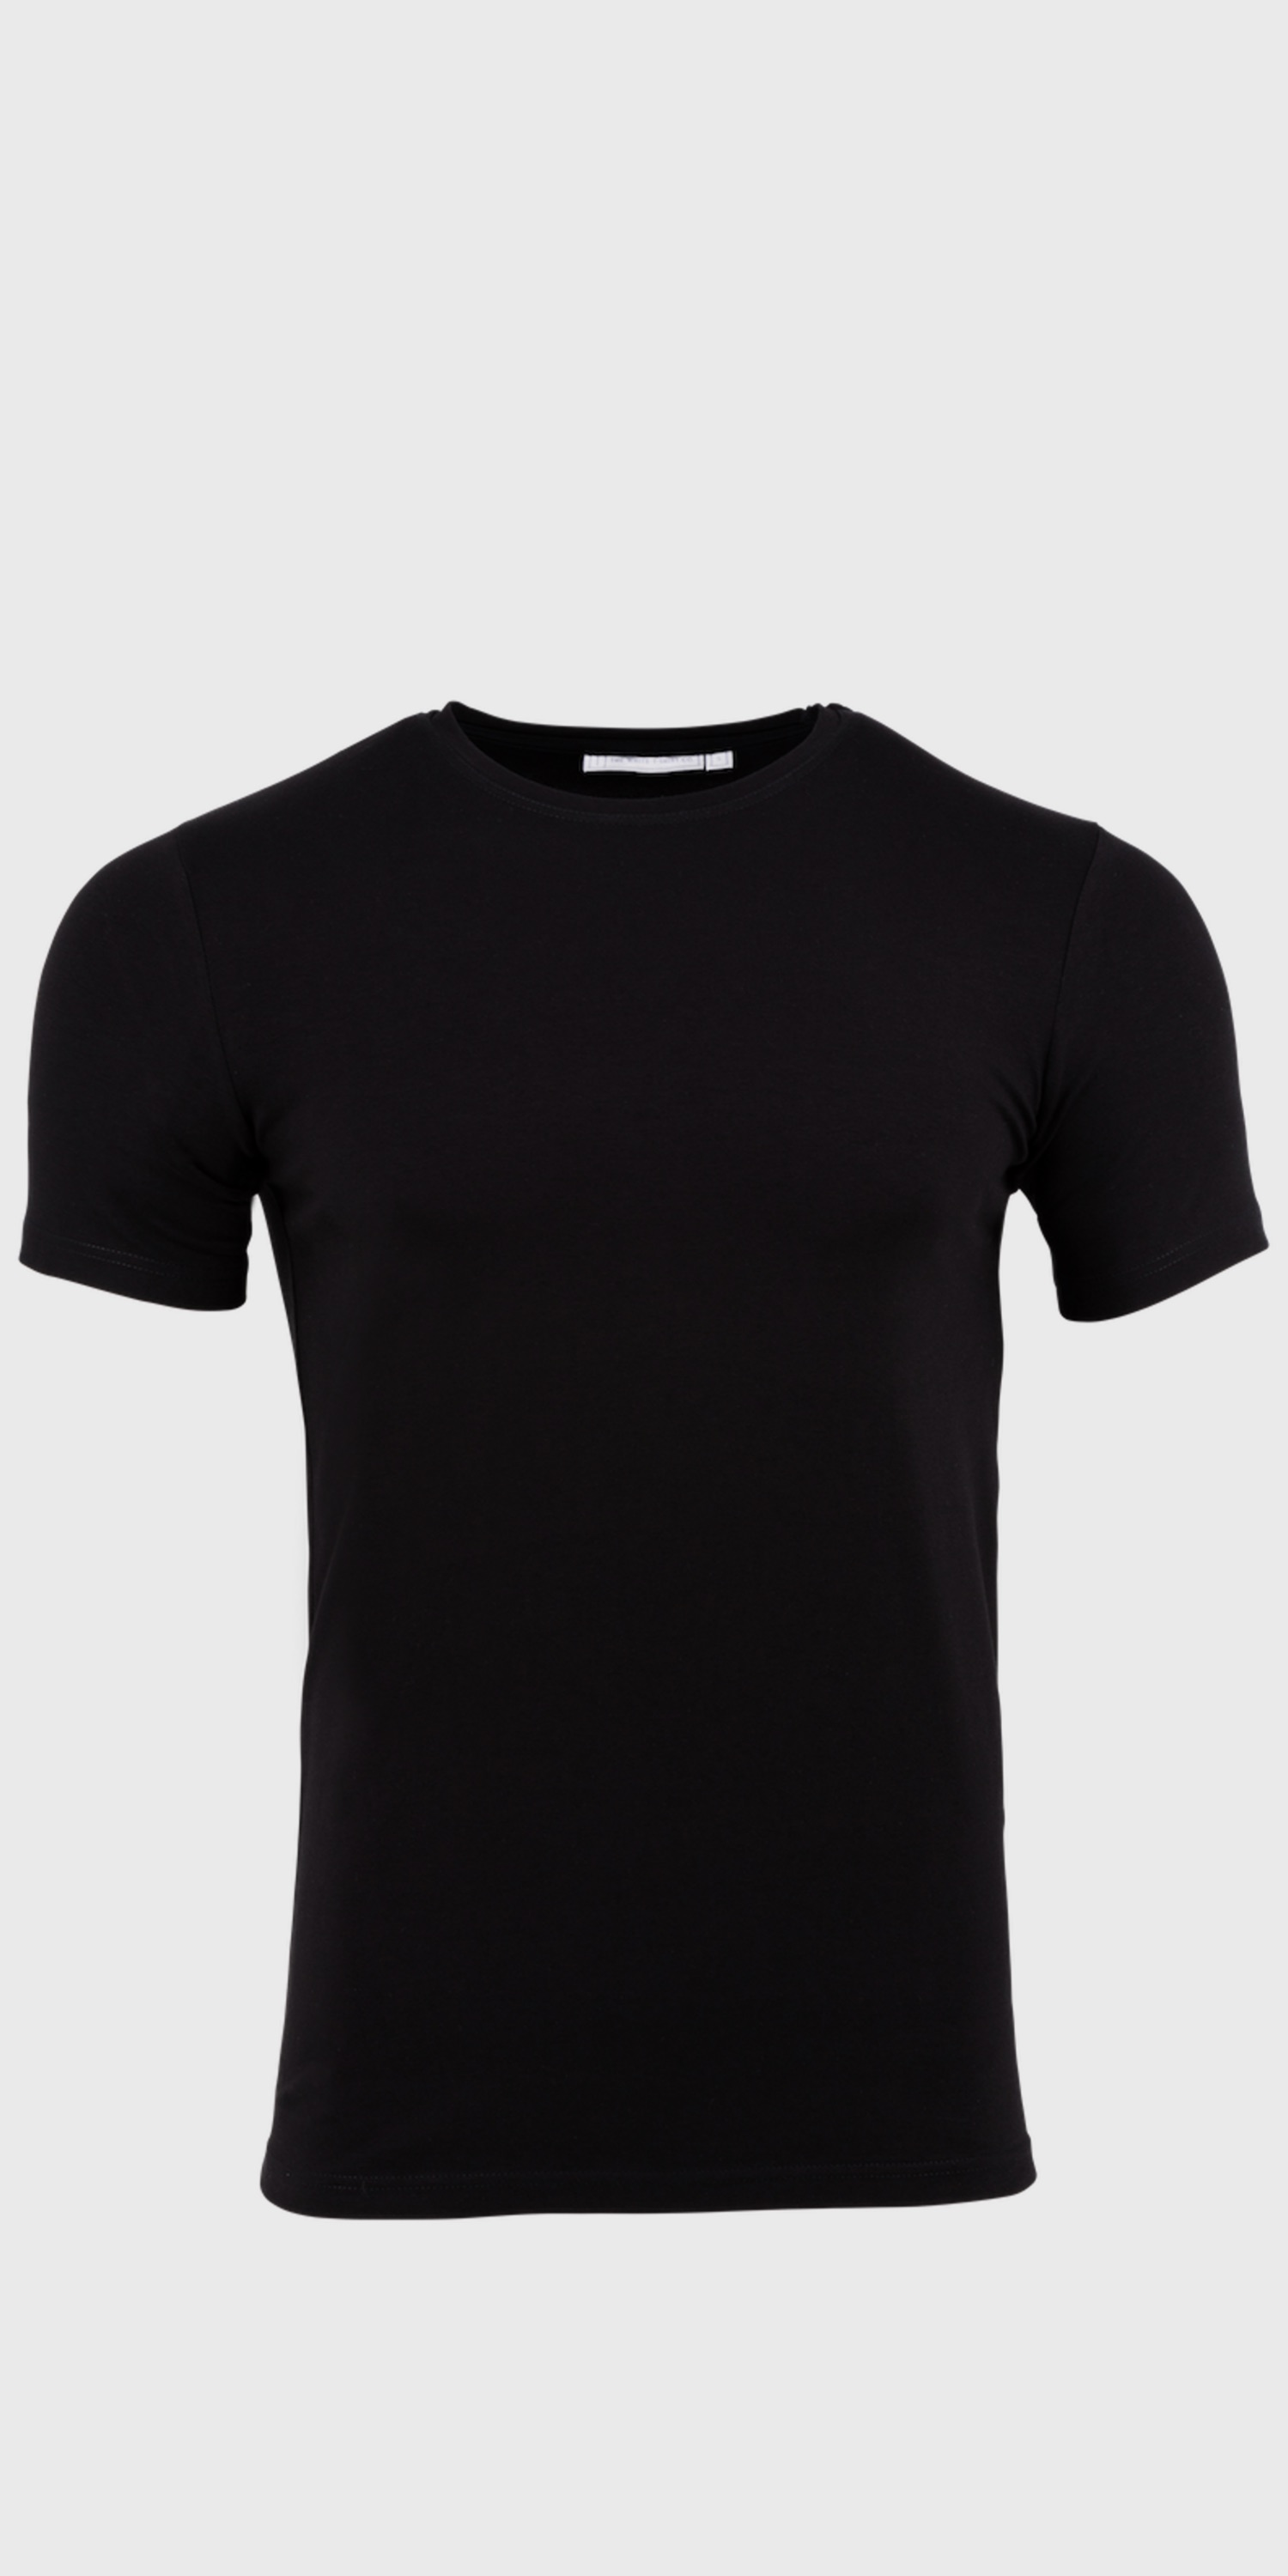 Men's white & black fitted short sleeved round neck t-shirts | The White T-Shirt Co